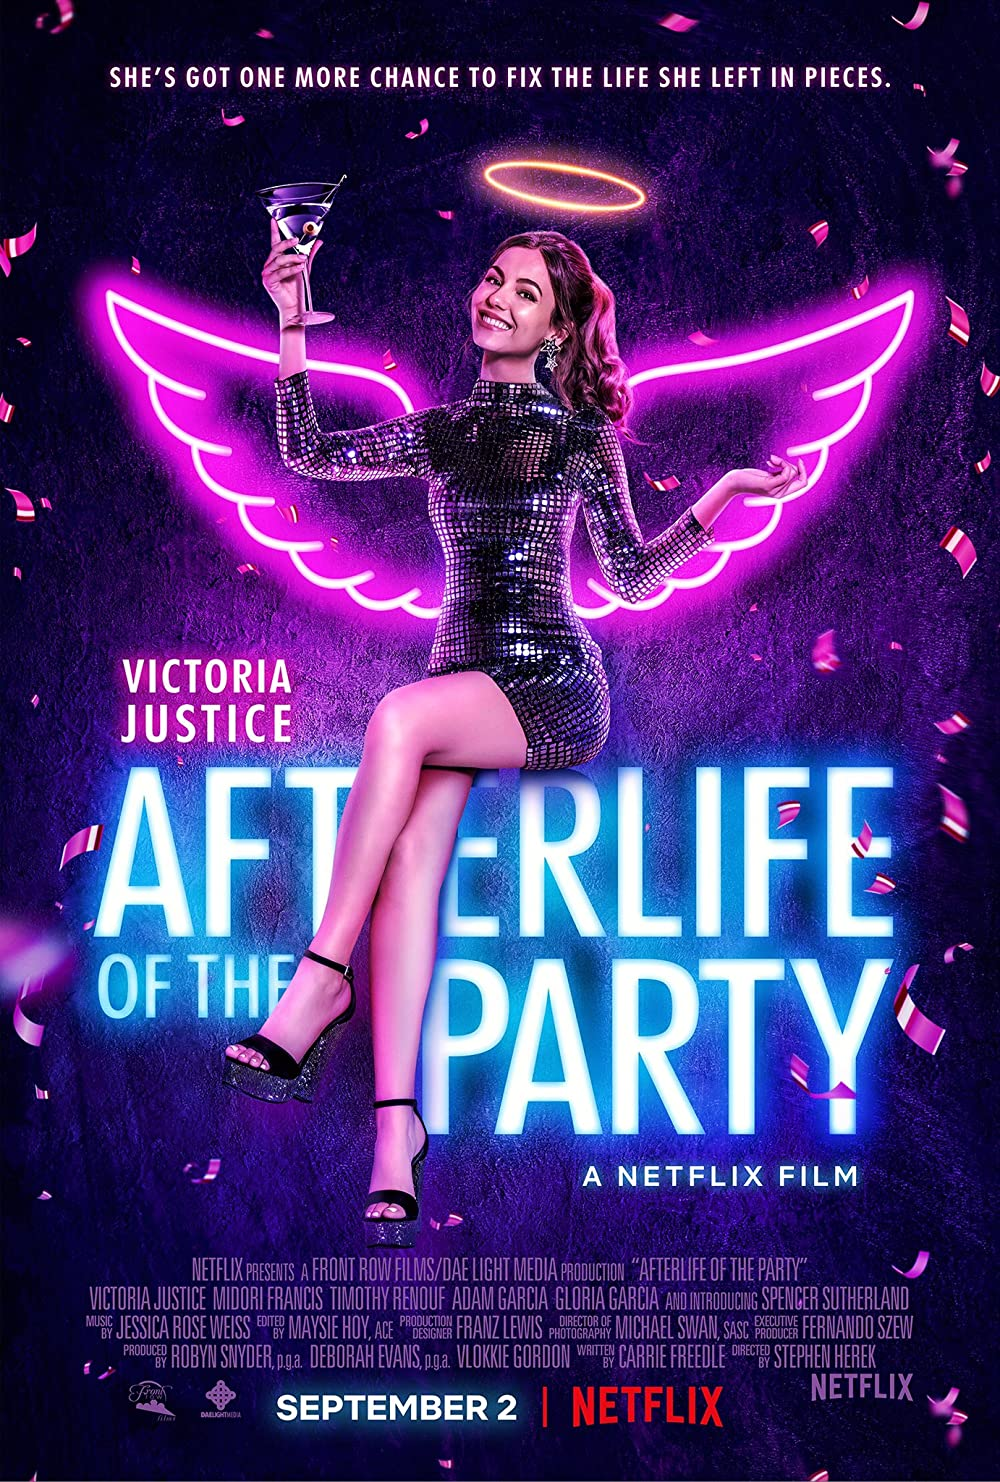 Afterlife of the Party